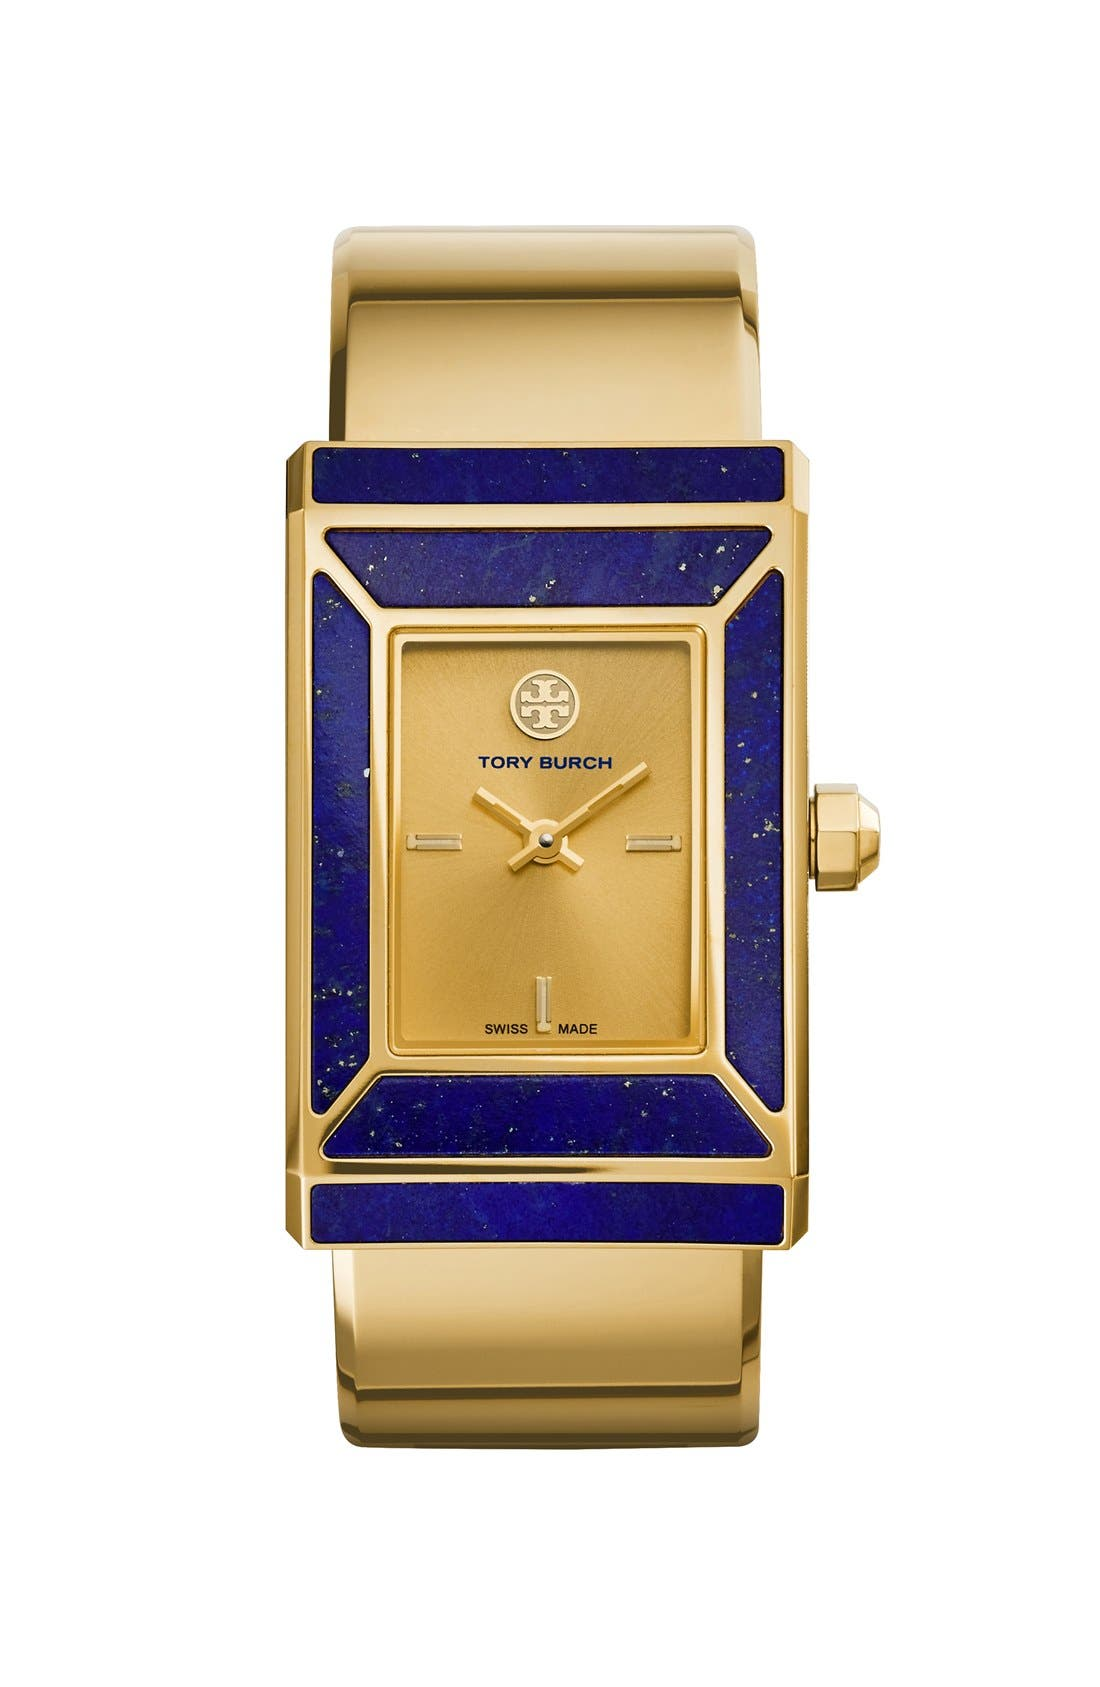 TORY BURCH,                             'Robinson' Rectangle Case Bangle Watch, 25mm x 38mm,                             Alternate thumbnail 2, color,                             710